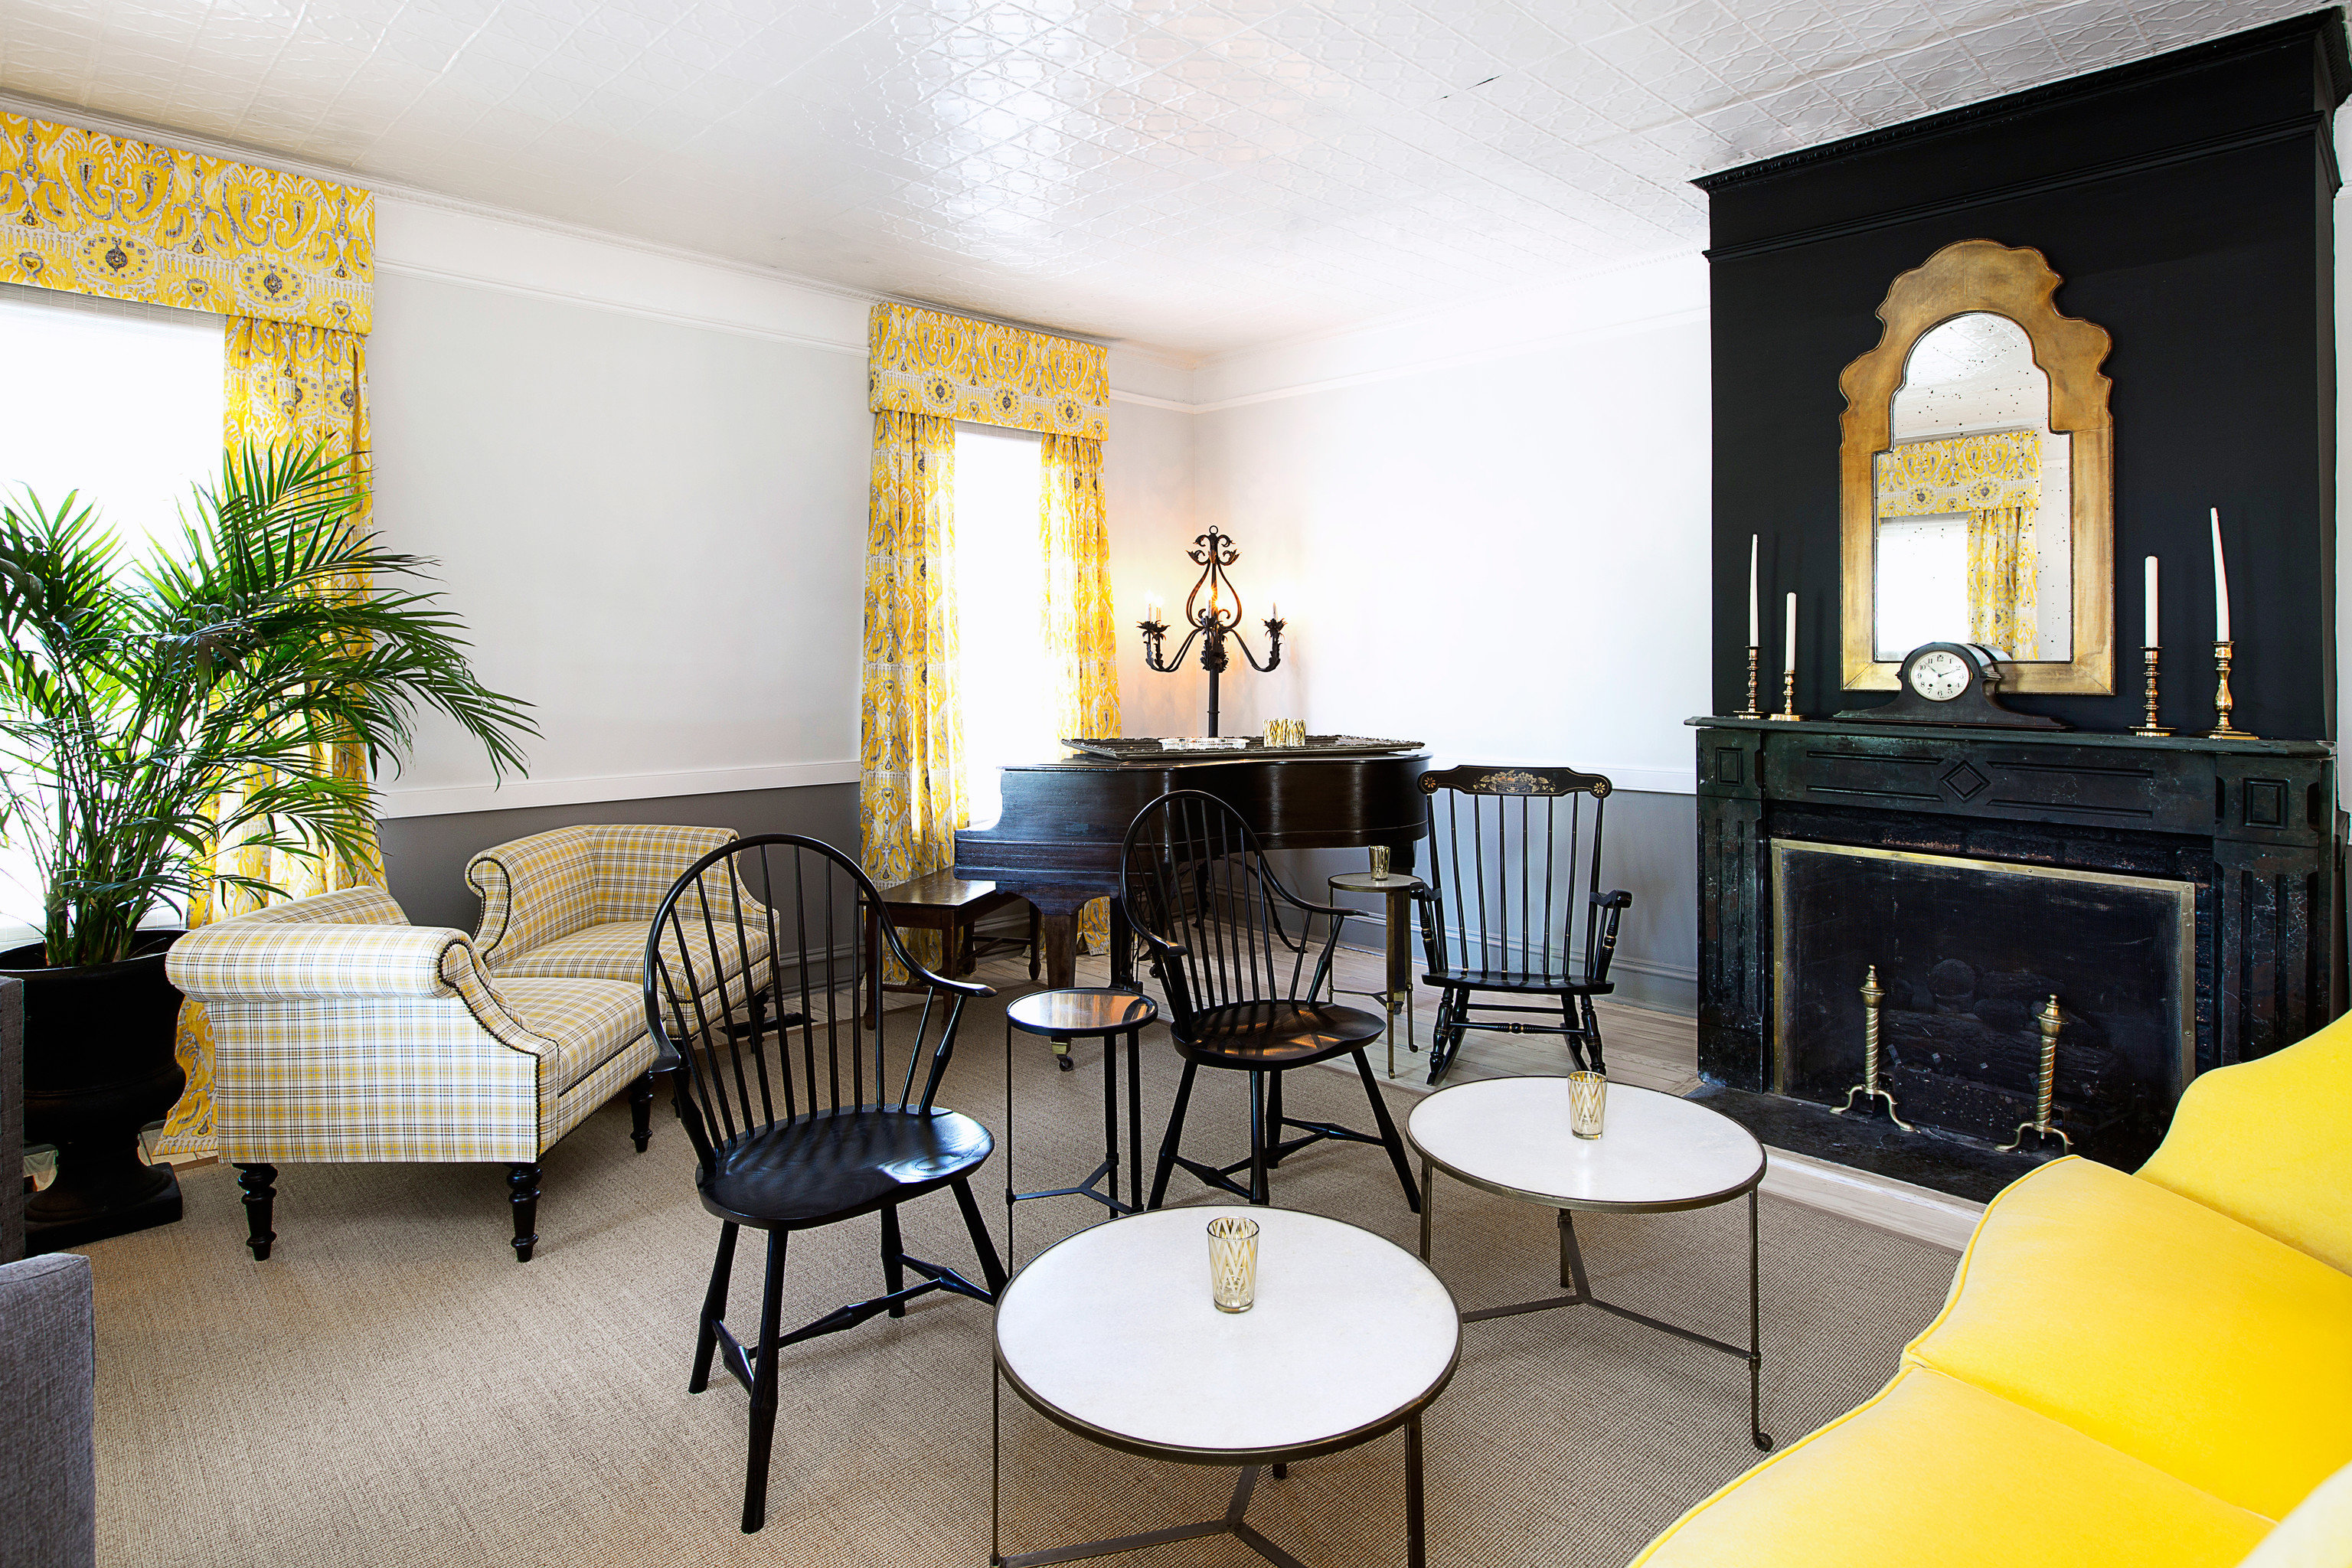 chair property living room yellow home Dining Suite Villa condominium cottage Bedroom